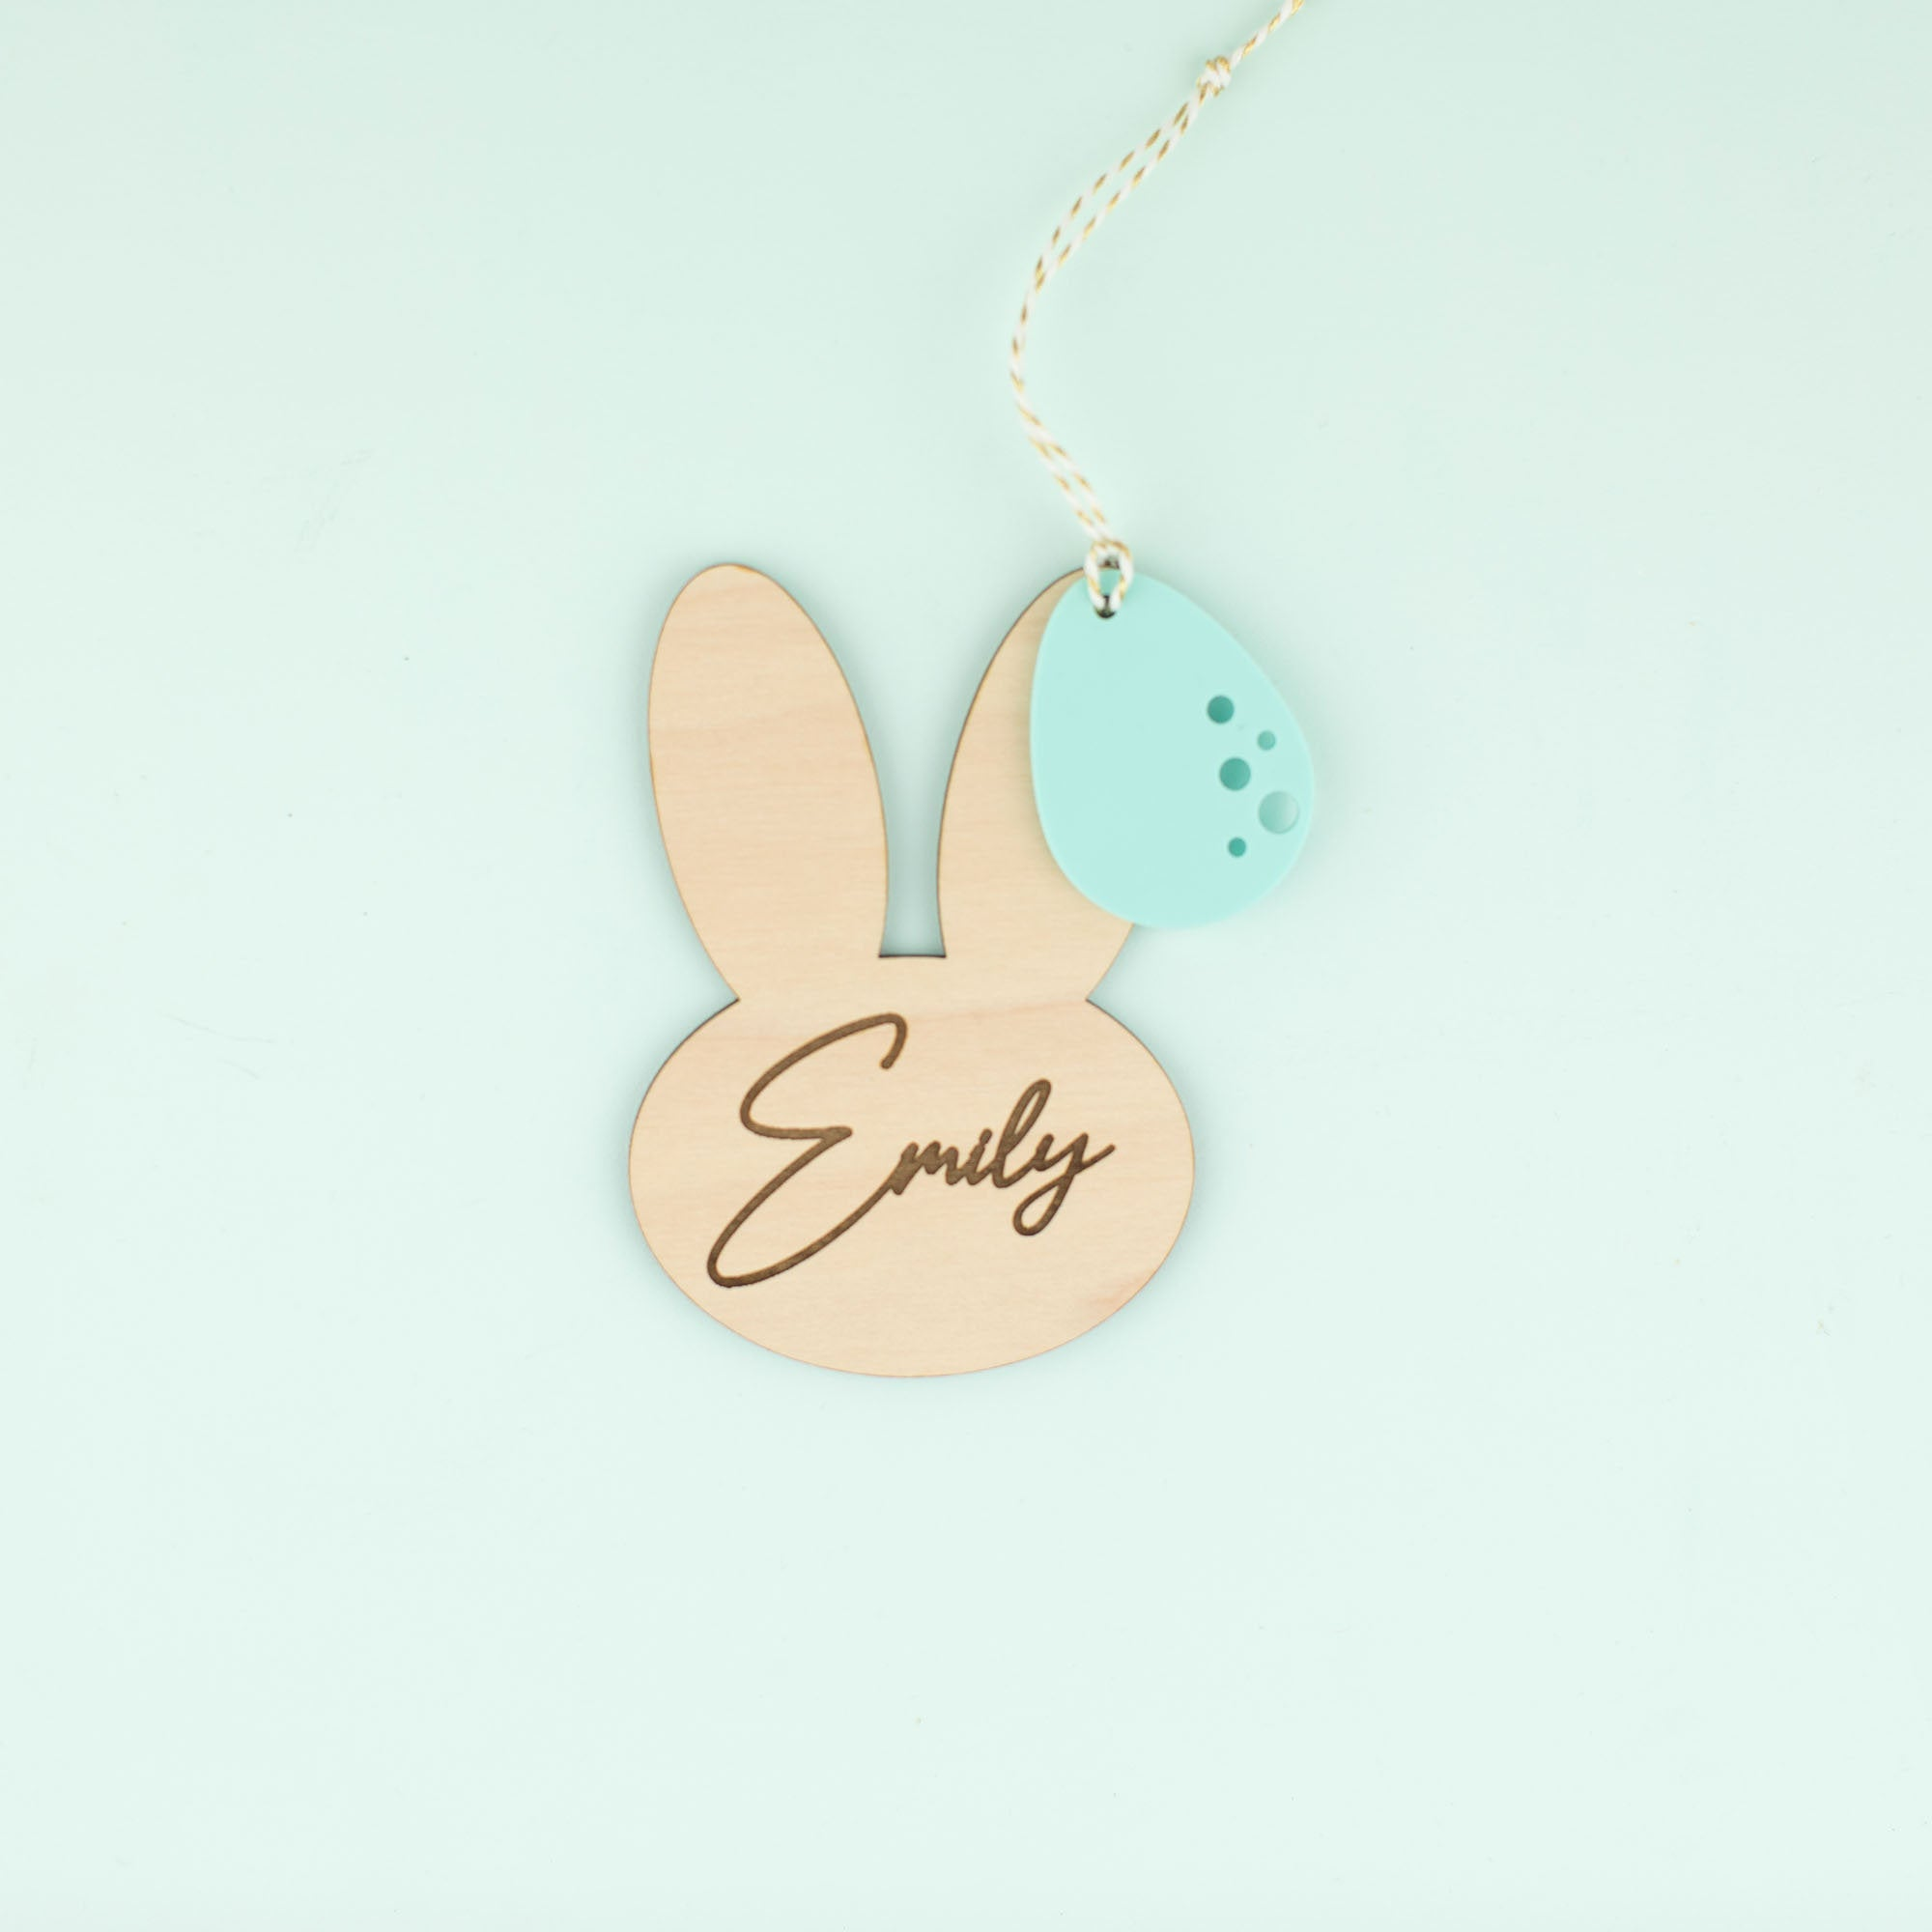 Personalized Wooden Bunny with Acrylic Egg Name Tag | Customized Name Tags | Basket Tags | Gift Tags | Easter